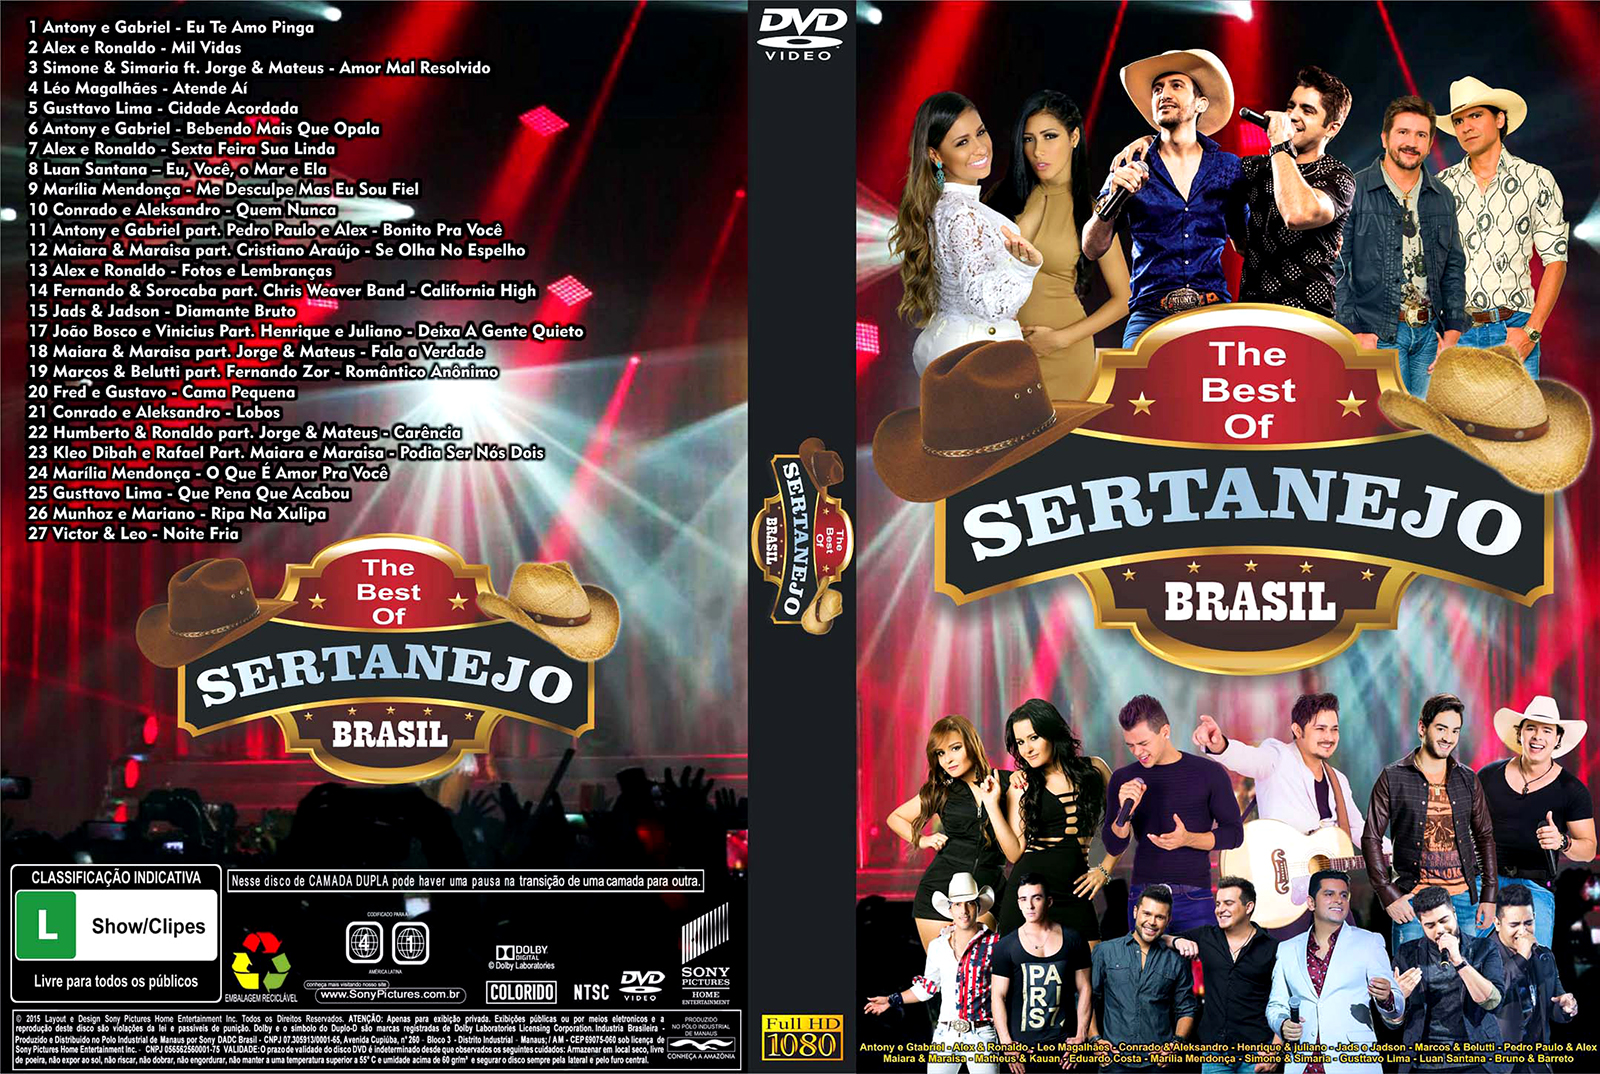 The Best of Sertanejo Brasil DVD-R The 2BBest 2Bof 2BSertanejo 2BBrasil 2BDVD R 2B  2BXANDAODOWNLOAD